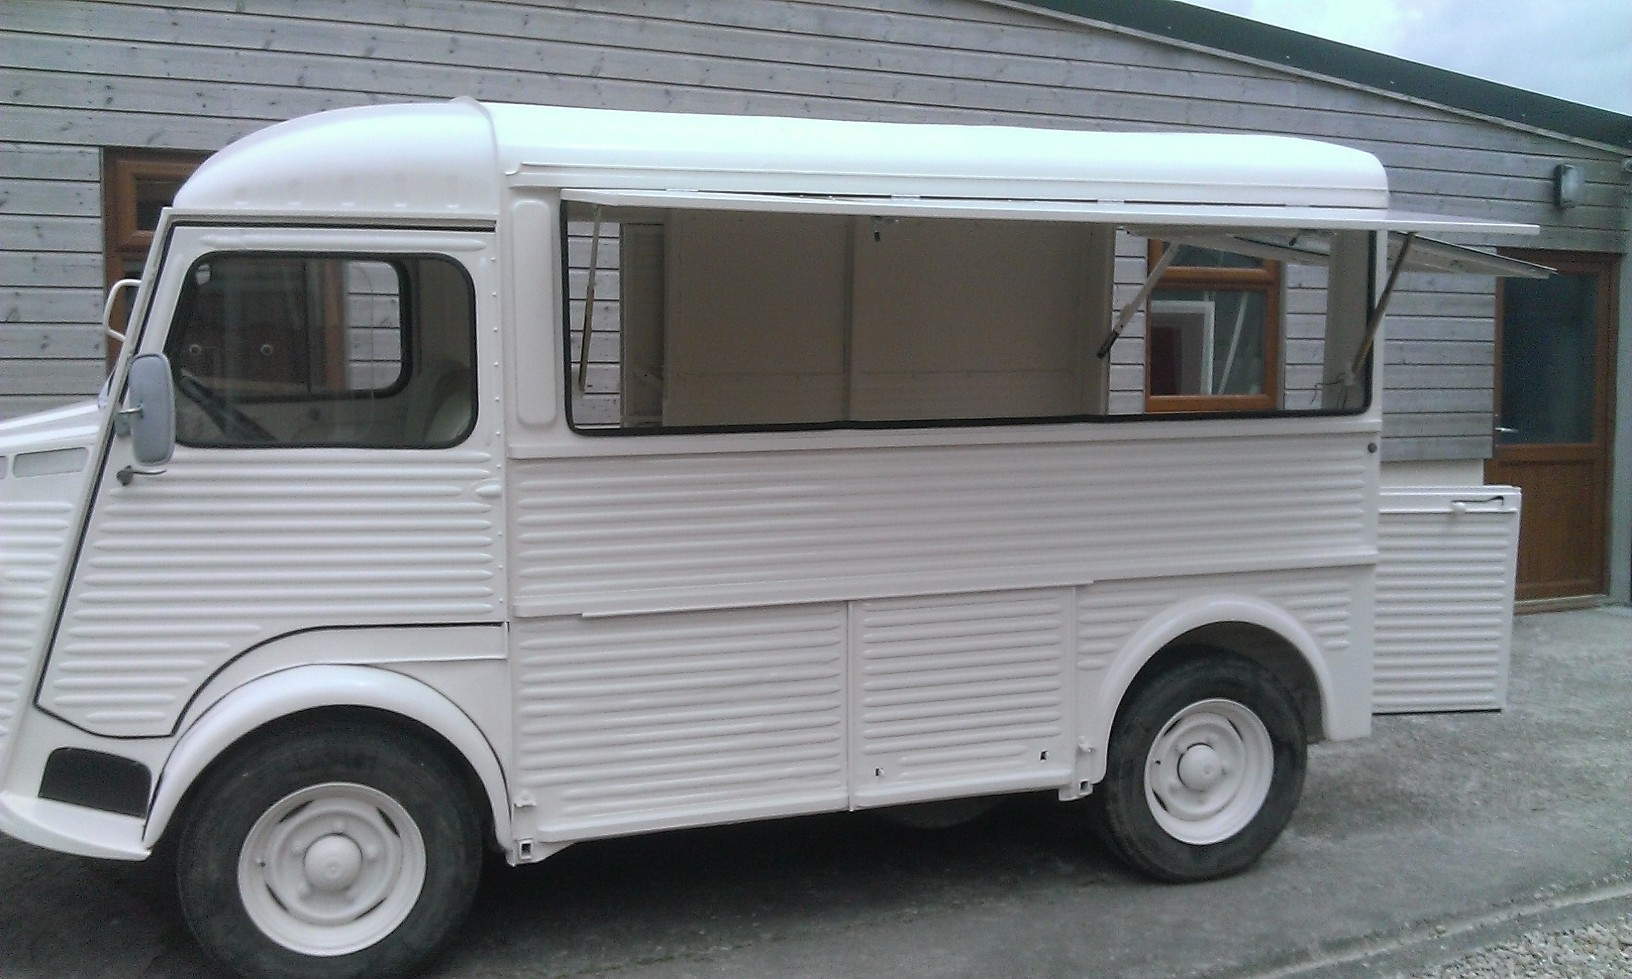 2017 Conversion Van >> Thinking of buying an Hy van to convert into a Commercial/food truck? - Le Tube Station - HY Vans